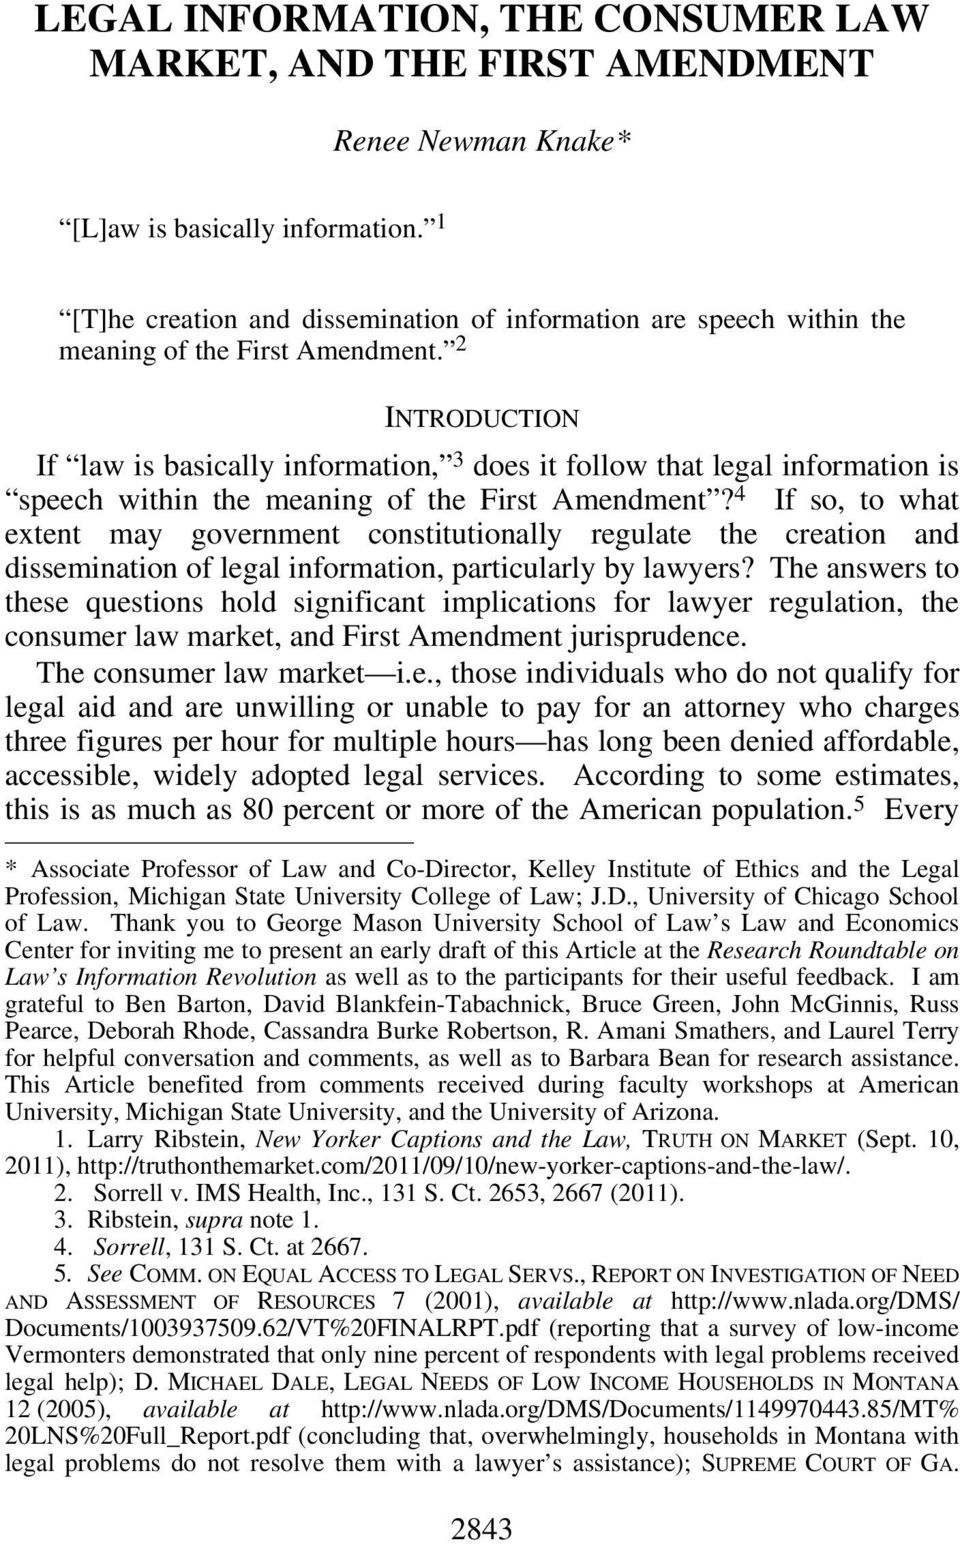 2 INTRODUCTION If law is basically information, 3 does it follow that legal information is speech within the meaning of the First Amendment?